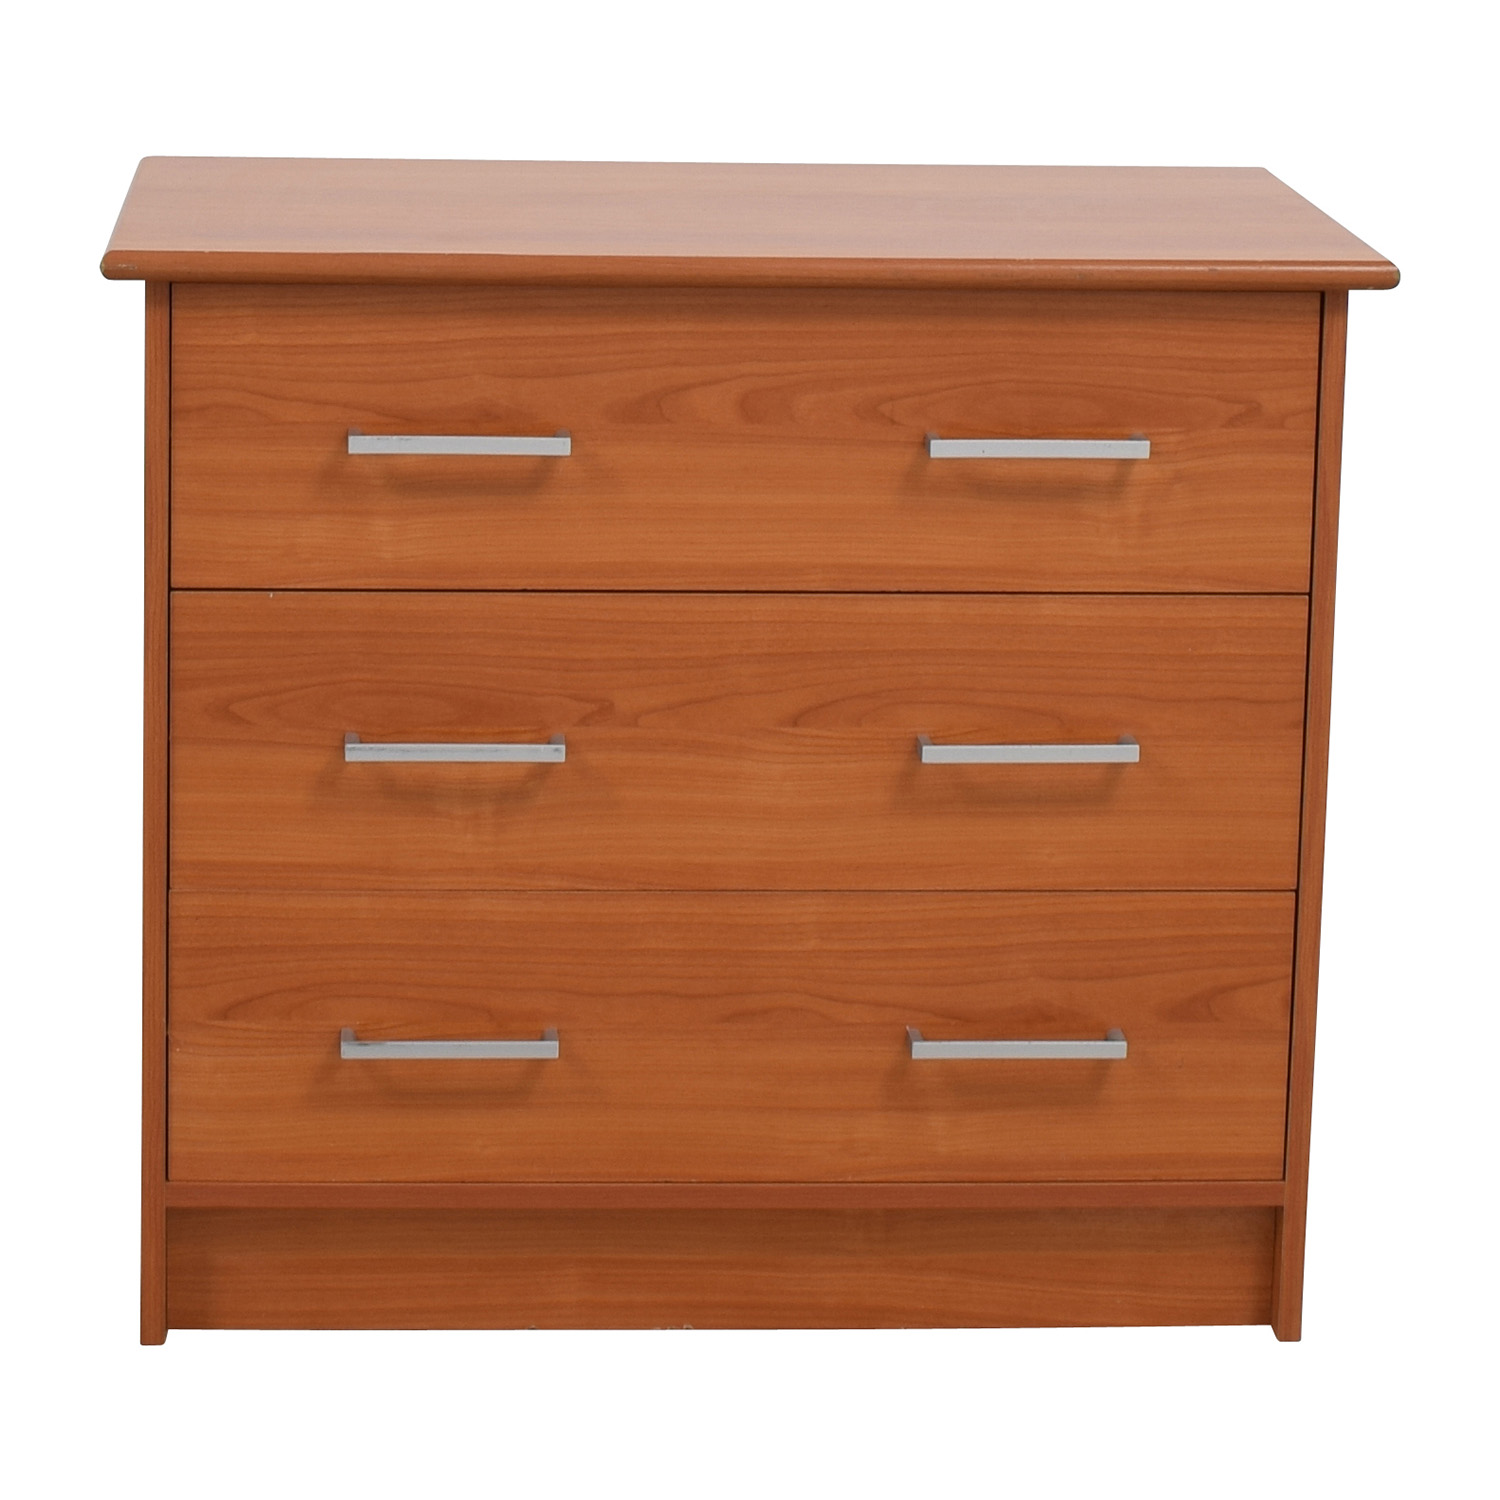 buy Small Three-Drawer Dresser online